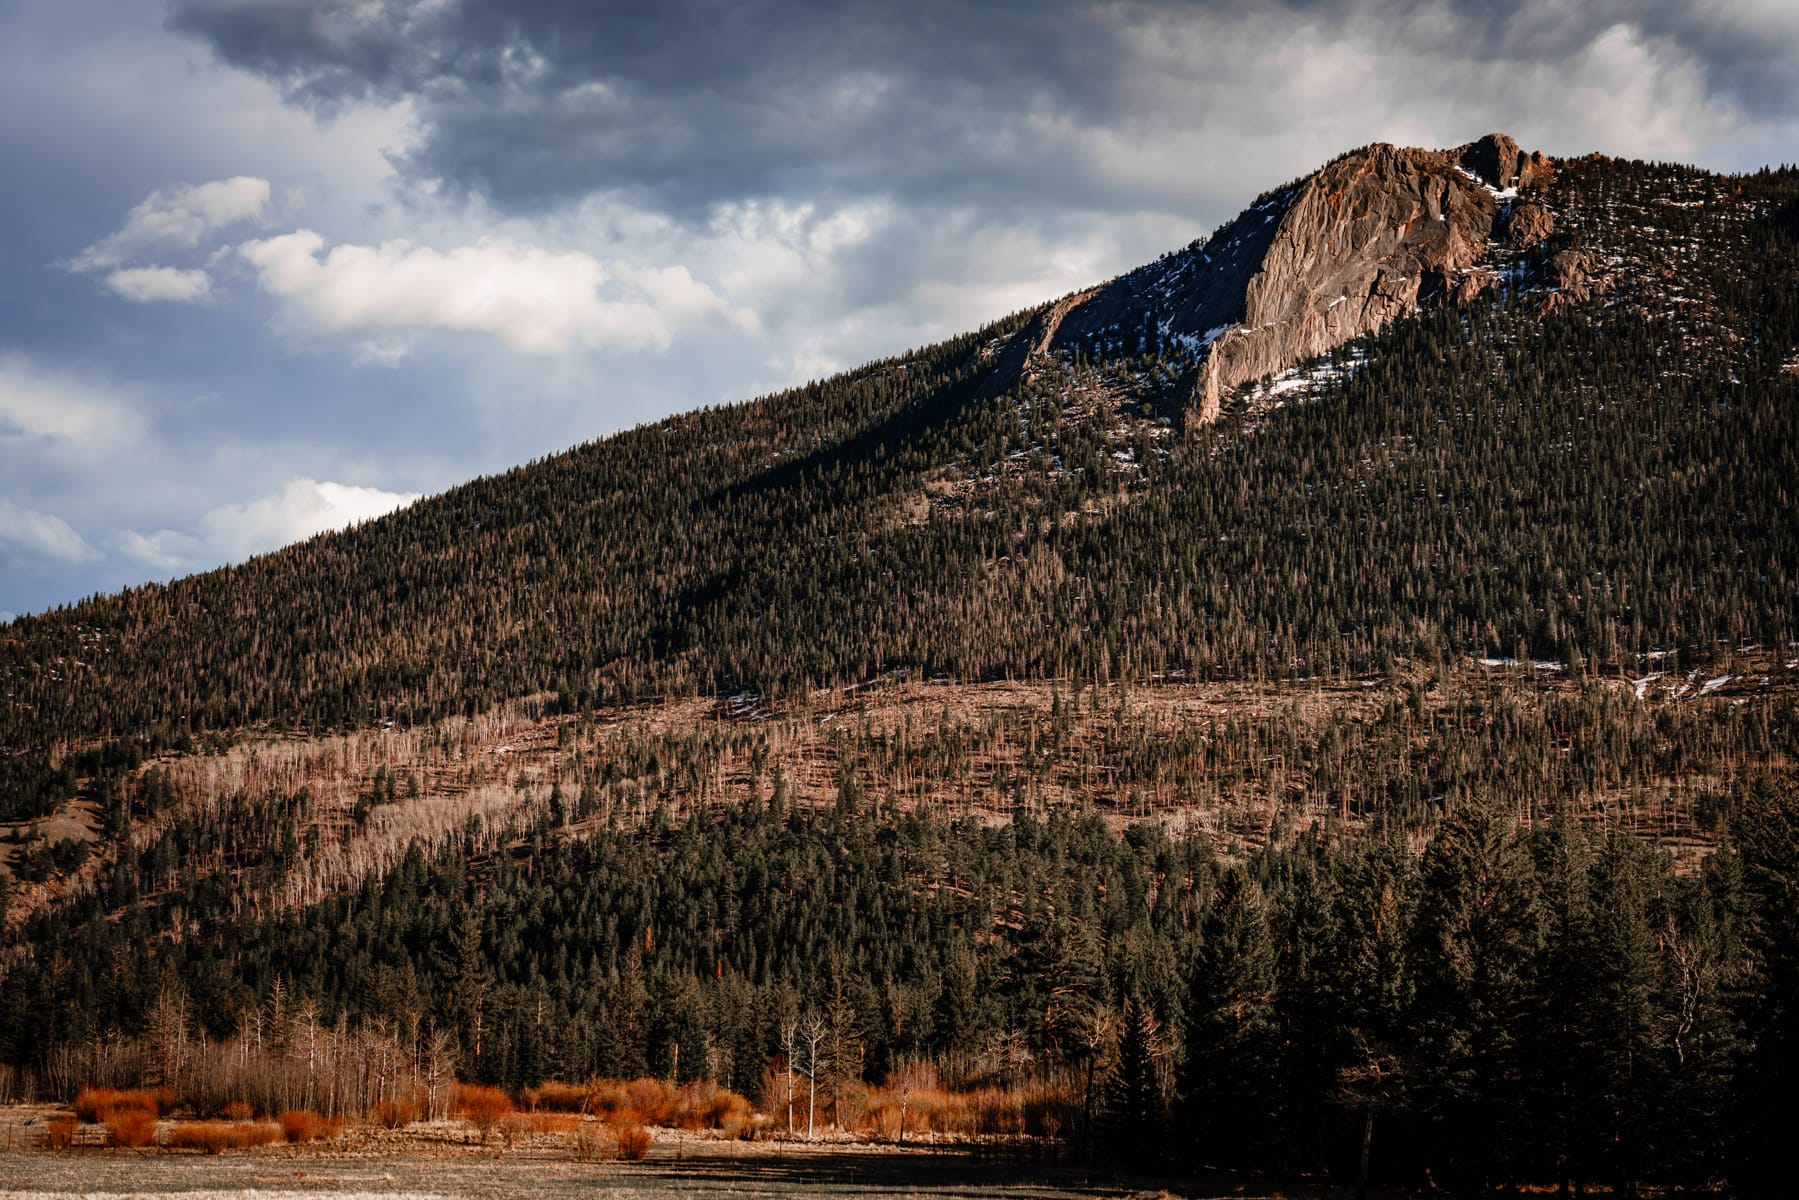 The forested and mountainous landscape of Colorado's Rocky Mountain National Park.